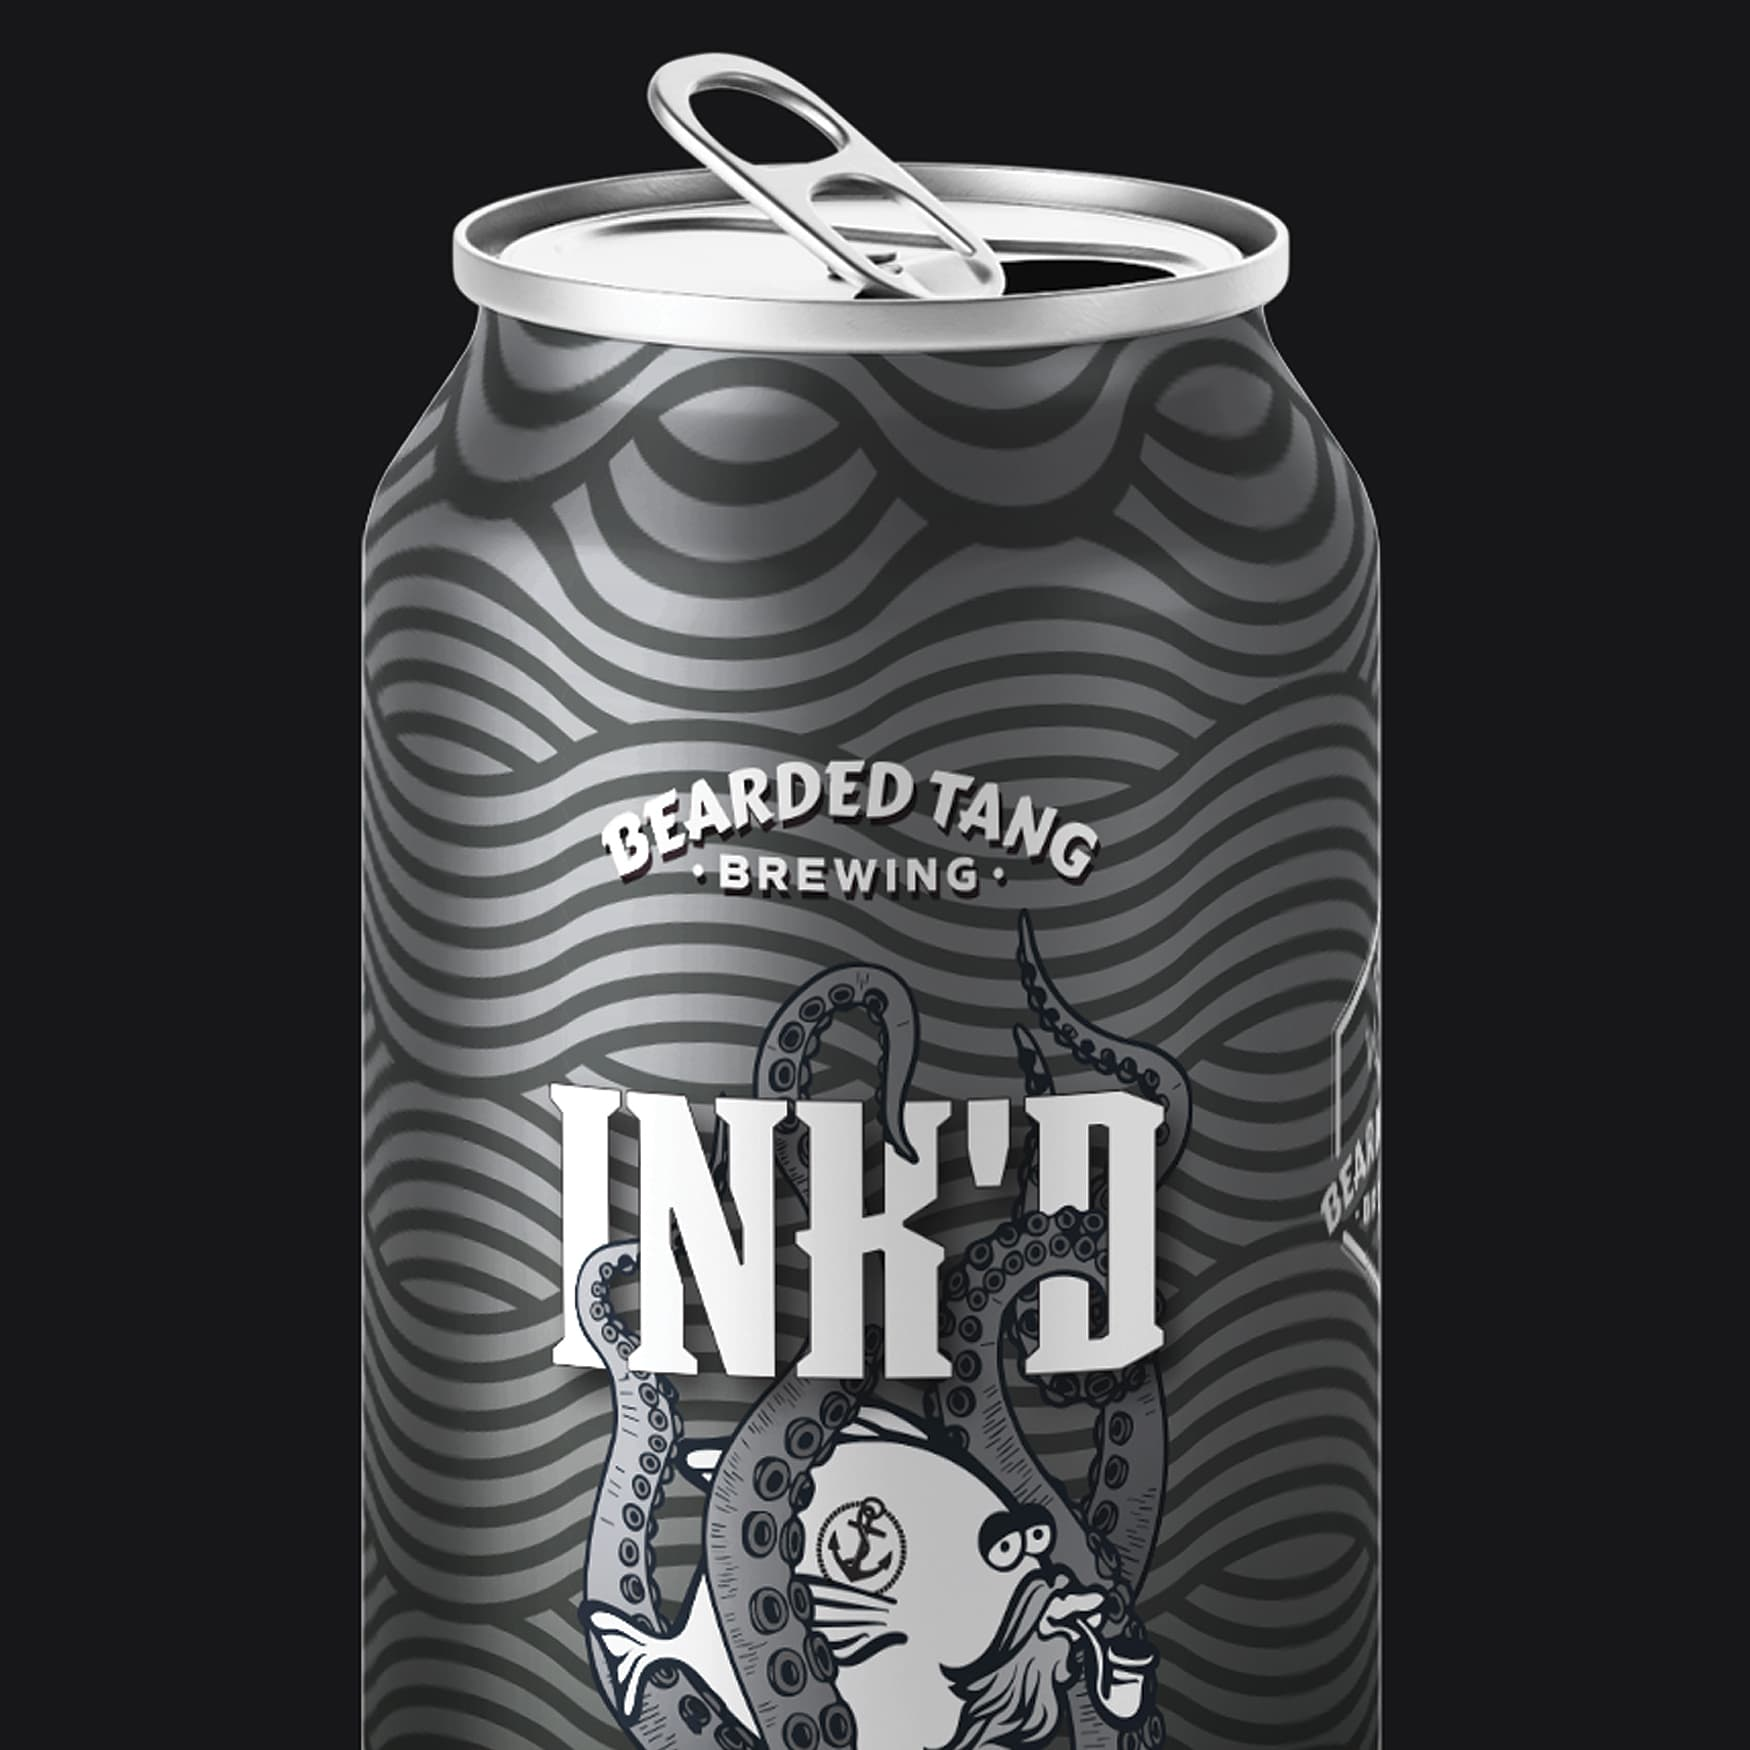 Beer can label design that says Bearded Tang Brewery.